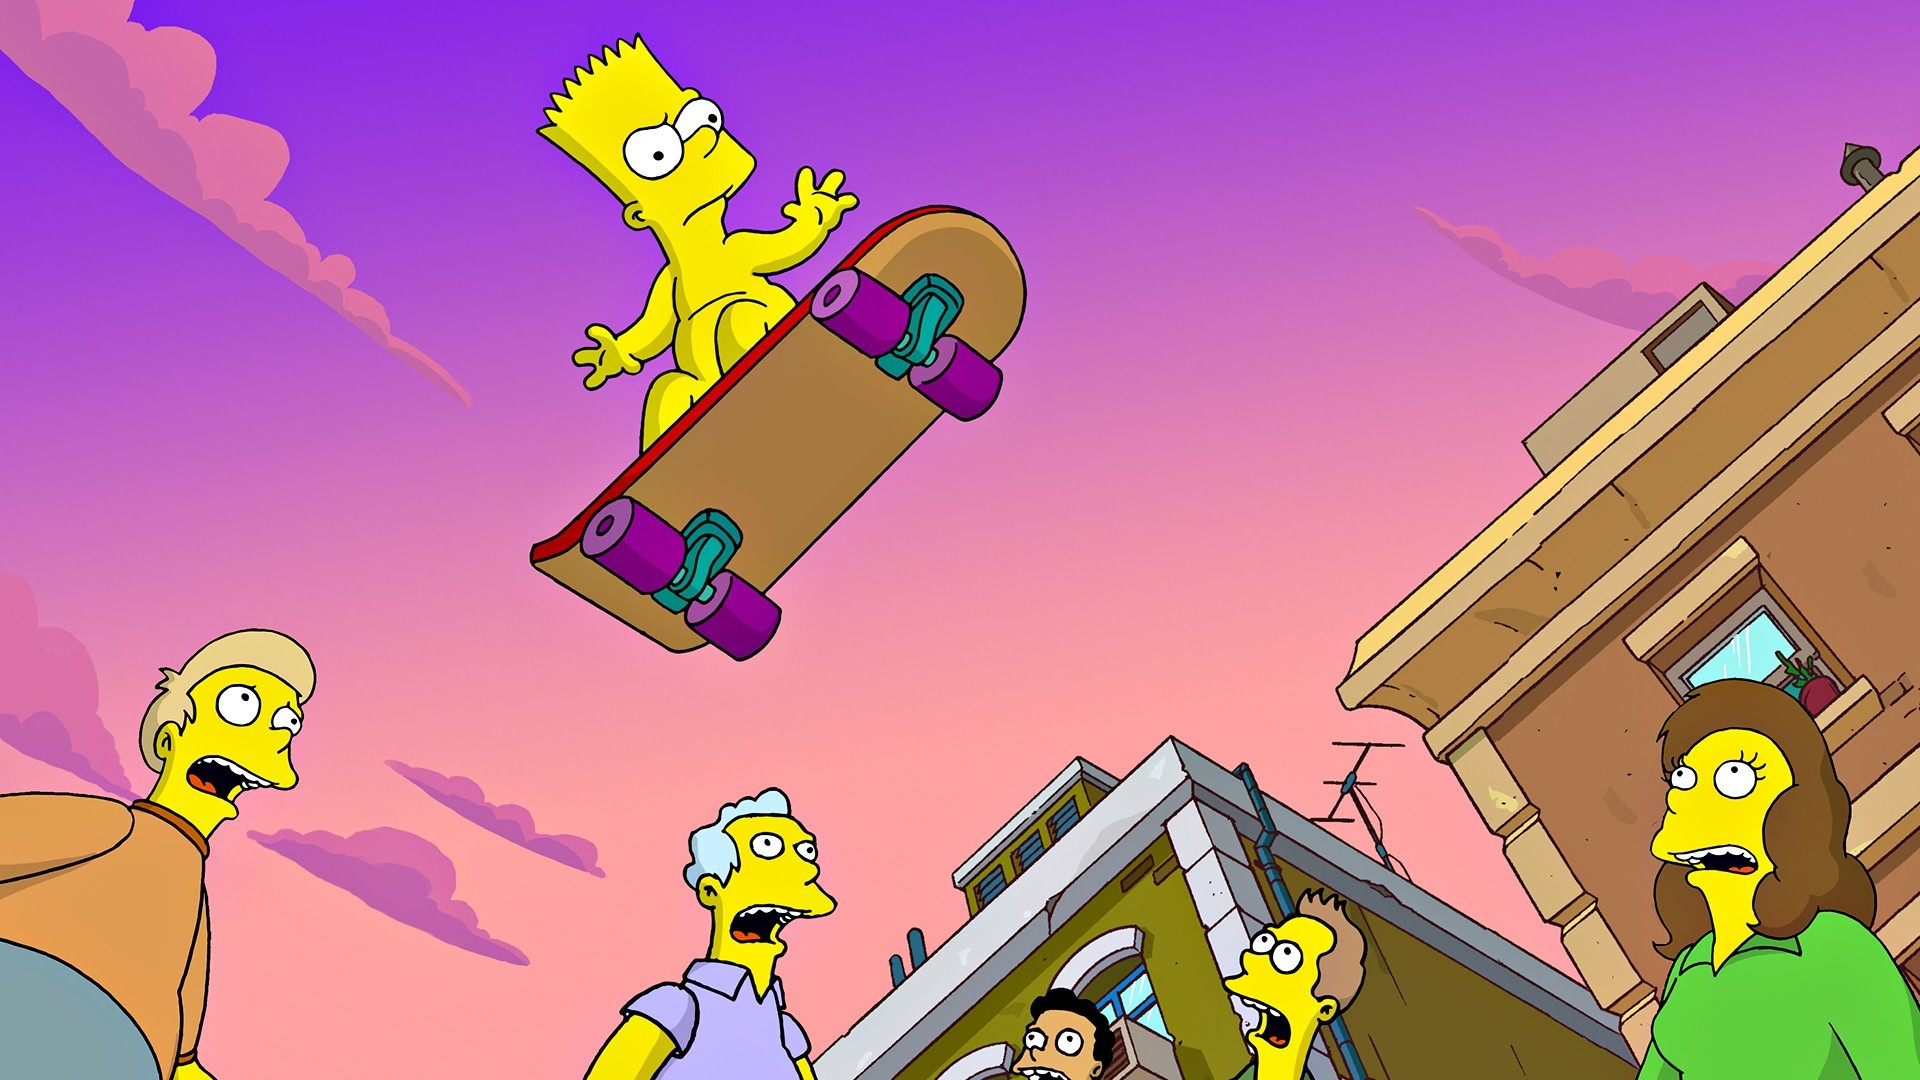 1920x1080 Wallpaper iphone simpsons - The Simpsons Bart Simpson Skateboard Wallpaper  Hd